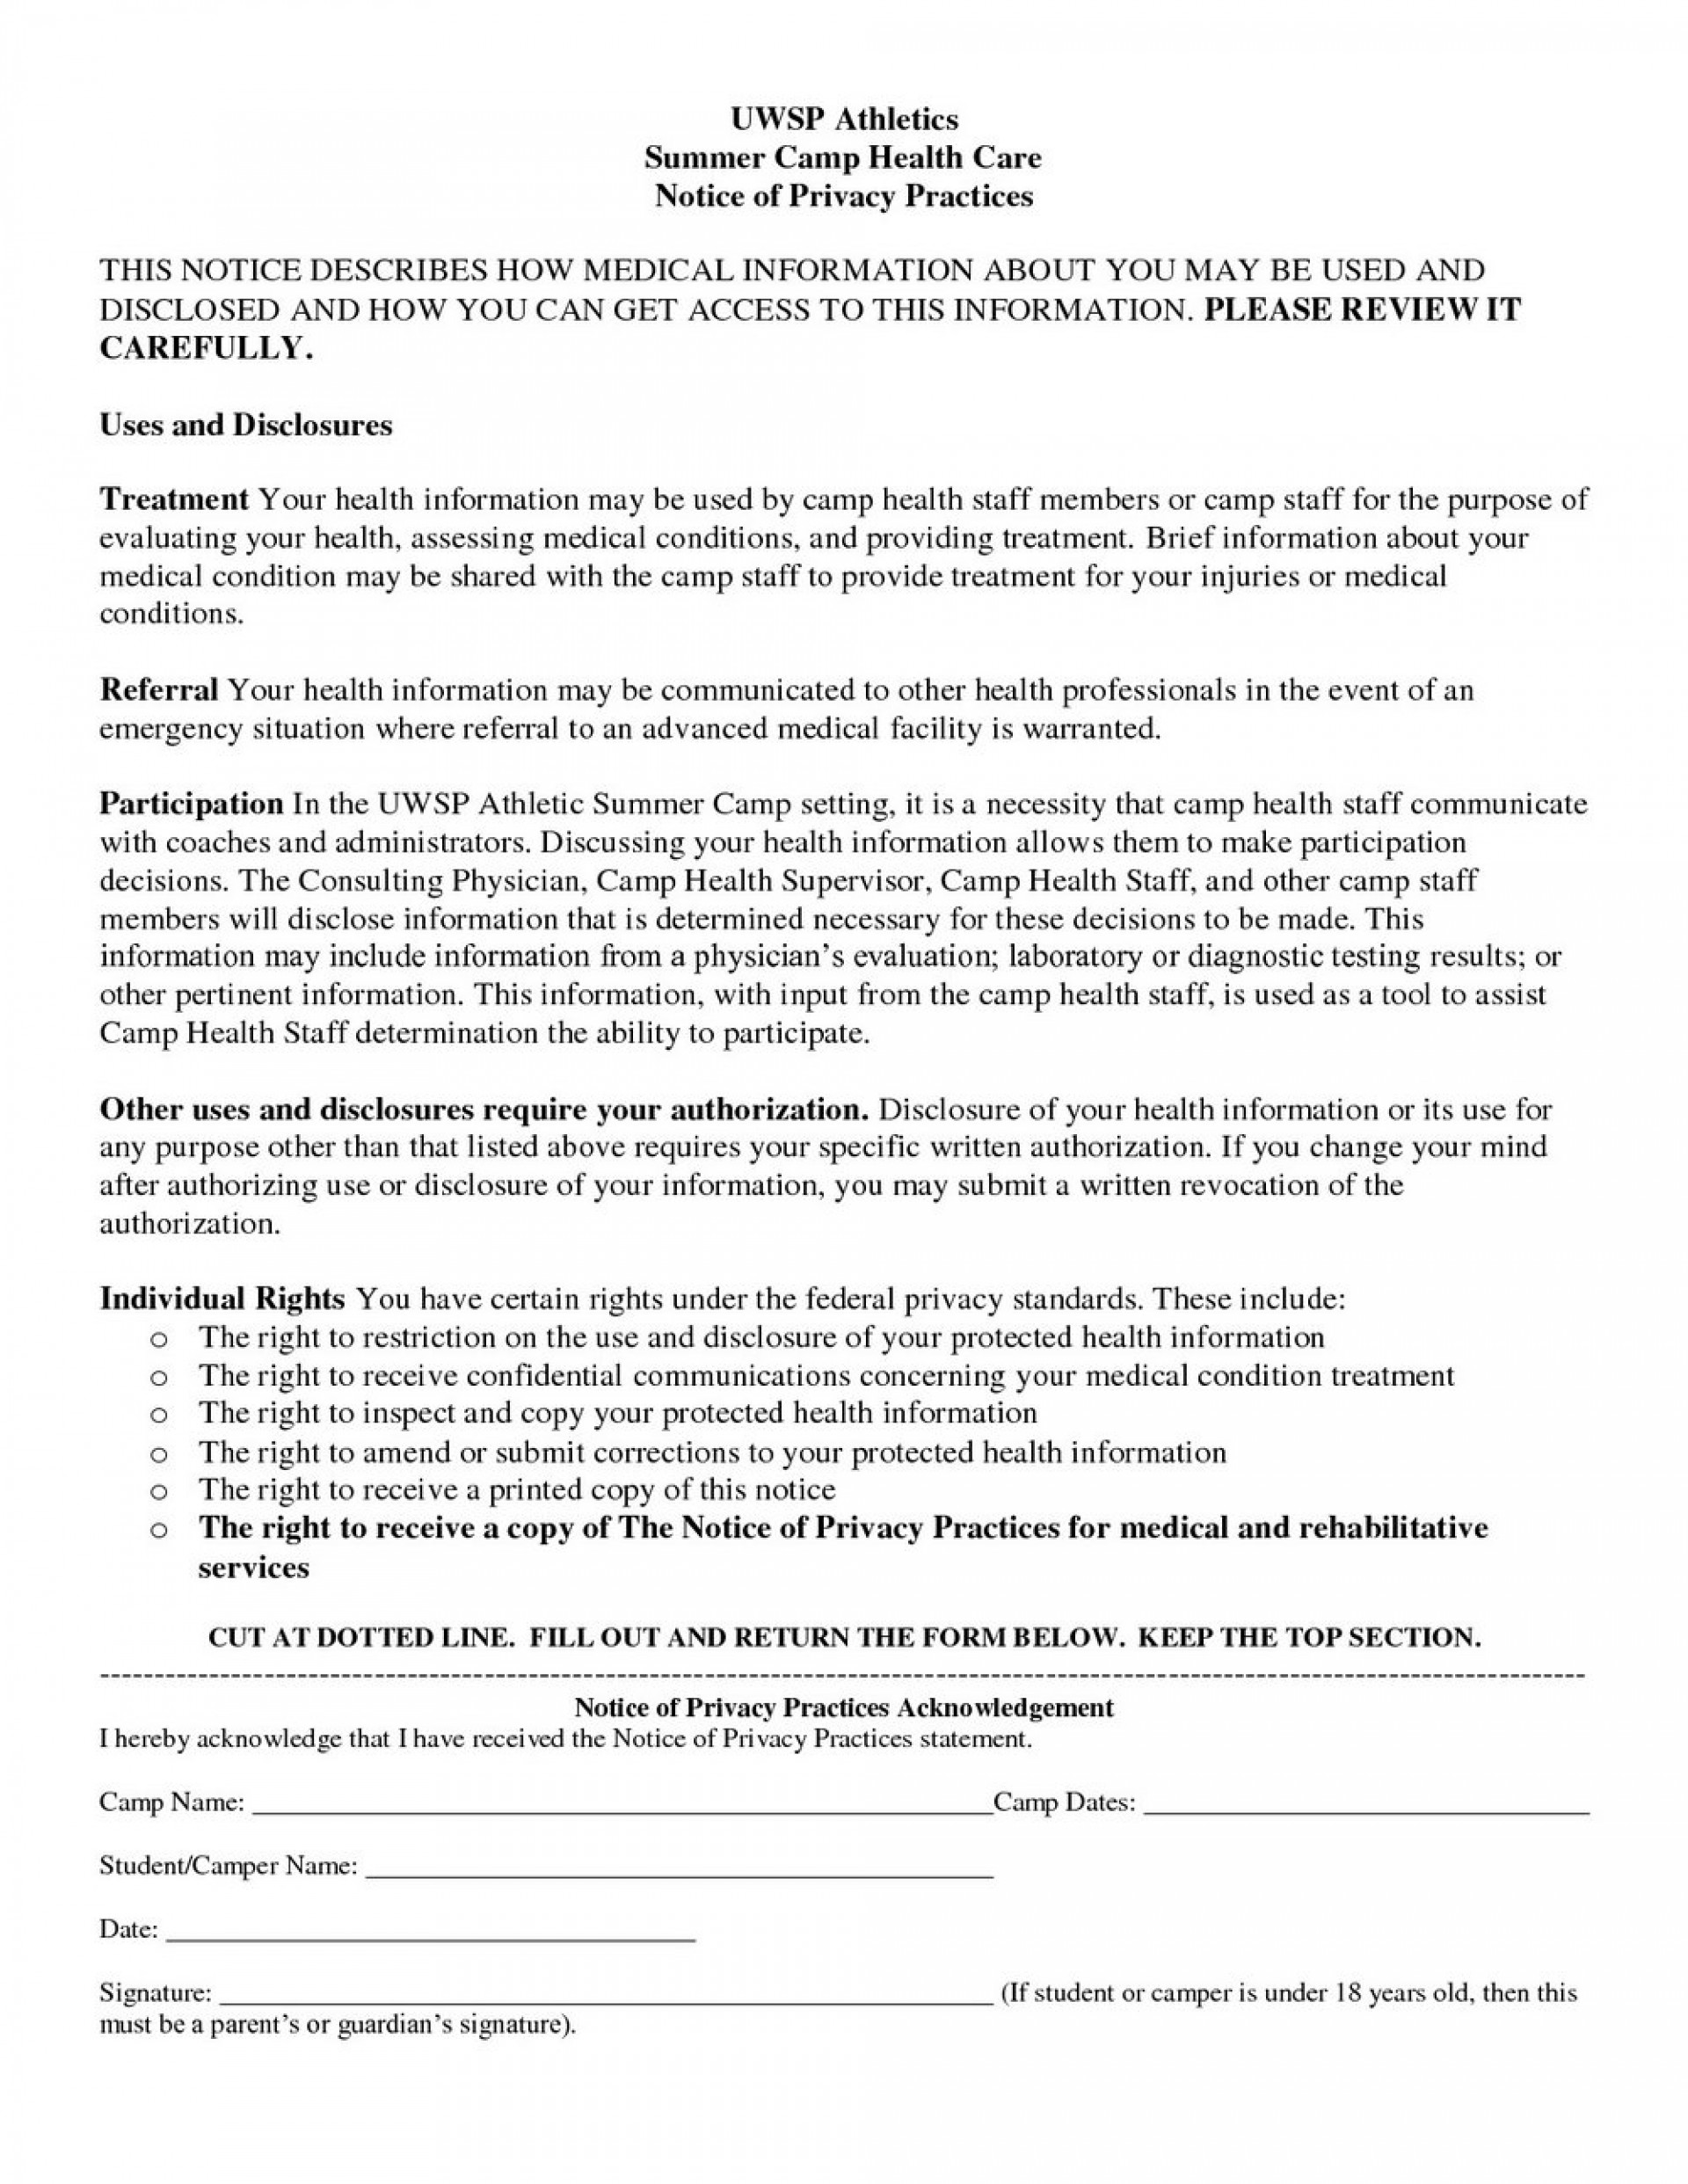 Hipaa Notice Of Privacy Practices Form Pdf 2017